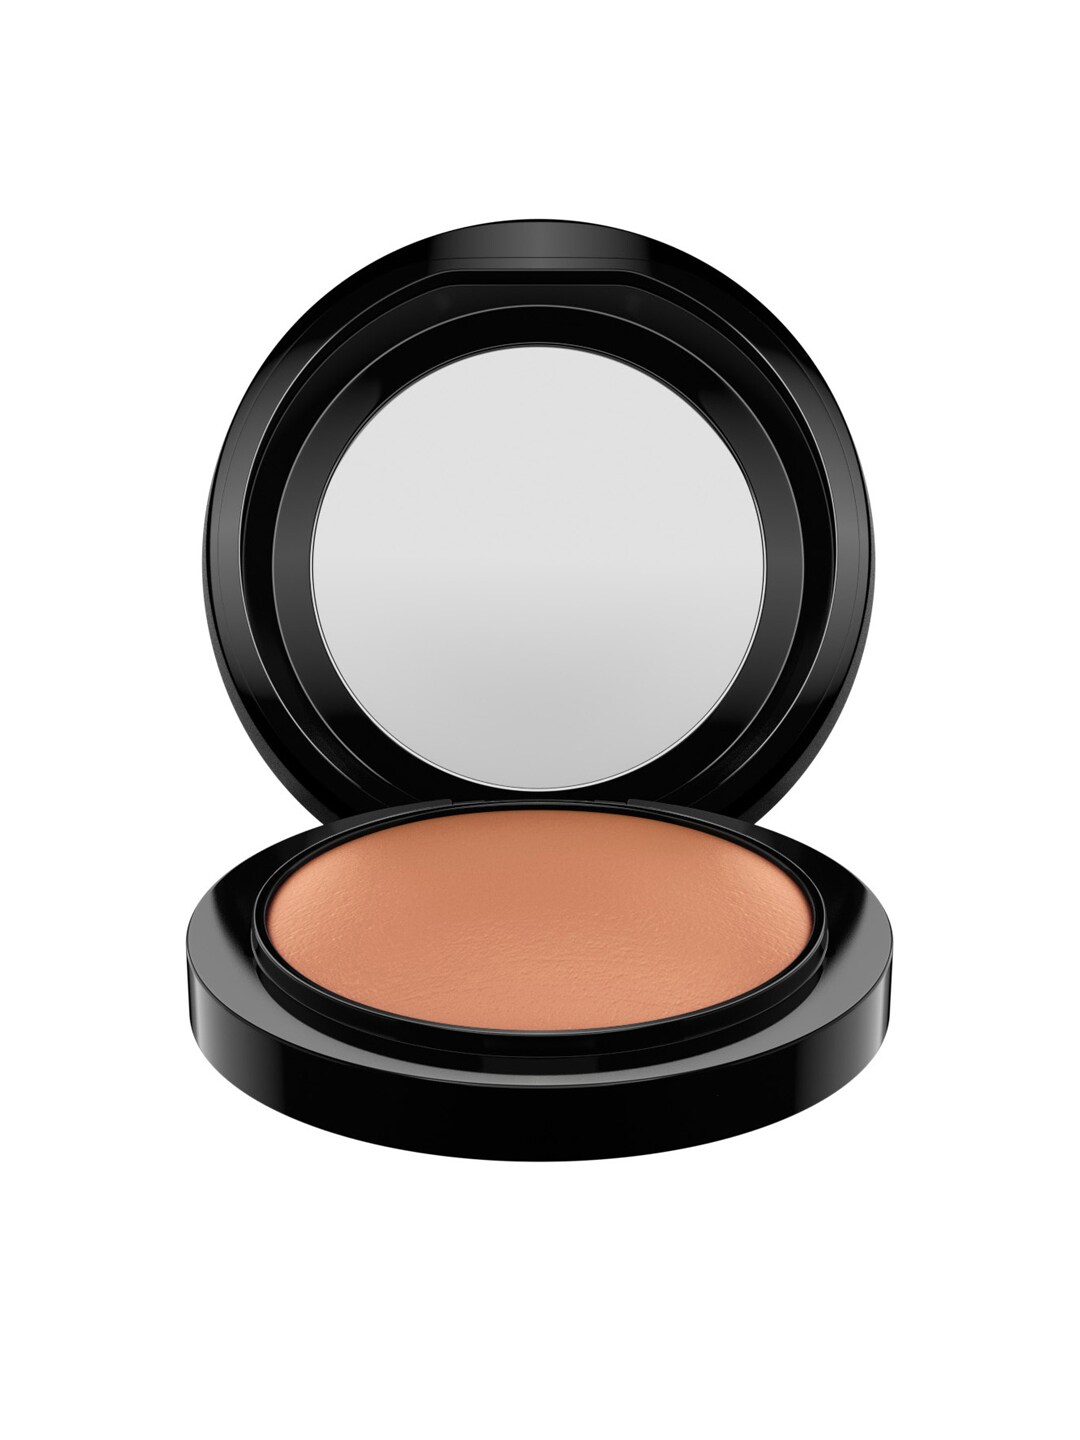 M.A.C Sun Power Mineralize Skinfinish Natural Compact image